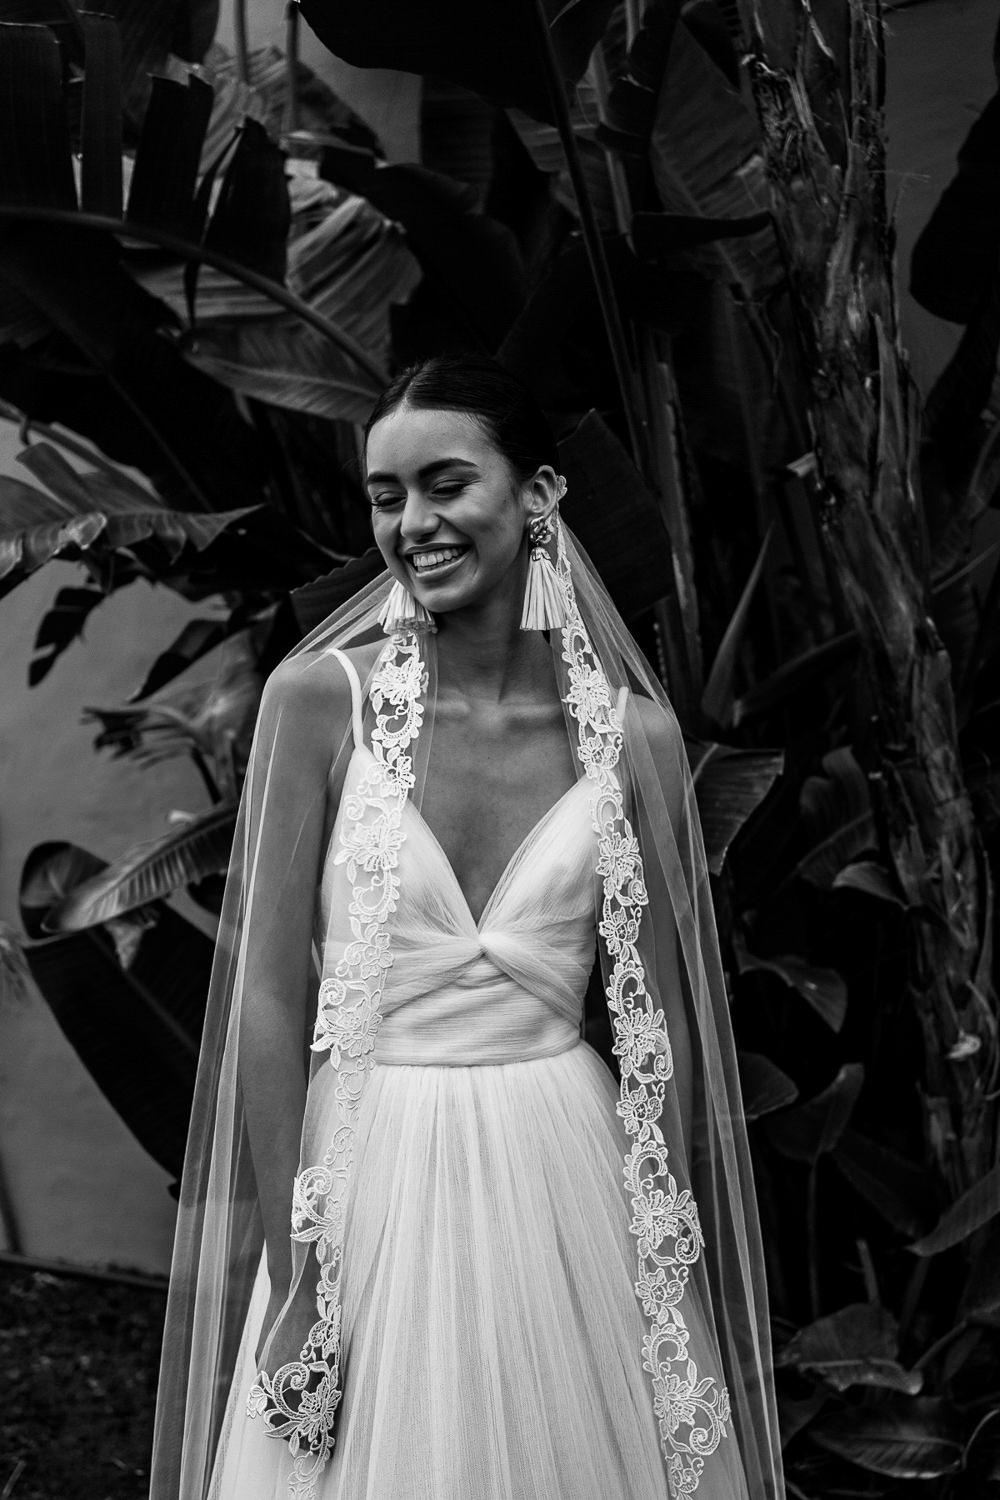 Dress Gown Bride Bridal Straps Skirt Lace Veil Marbella Elopement Wedding Nora Photography